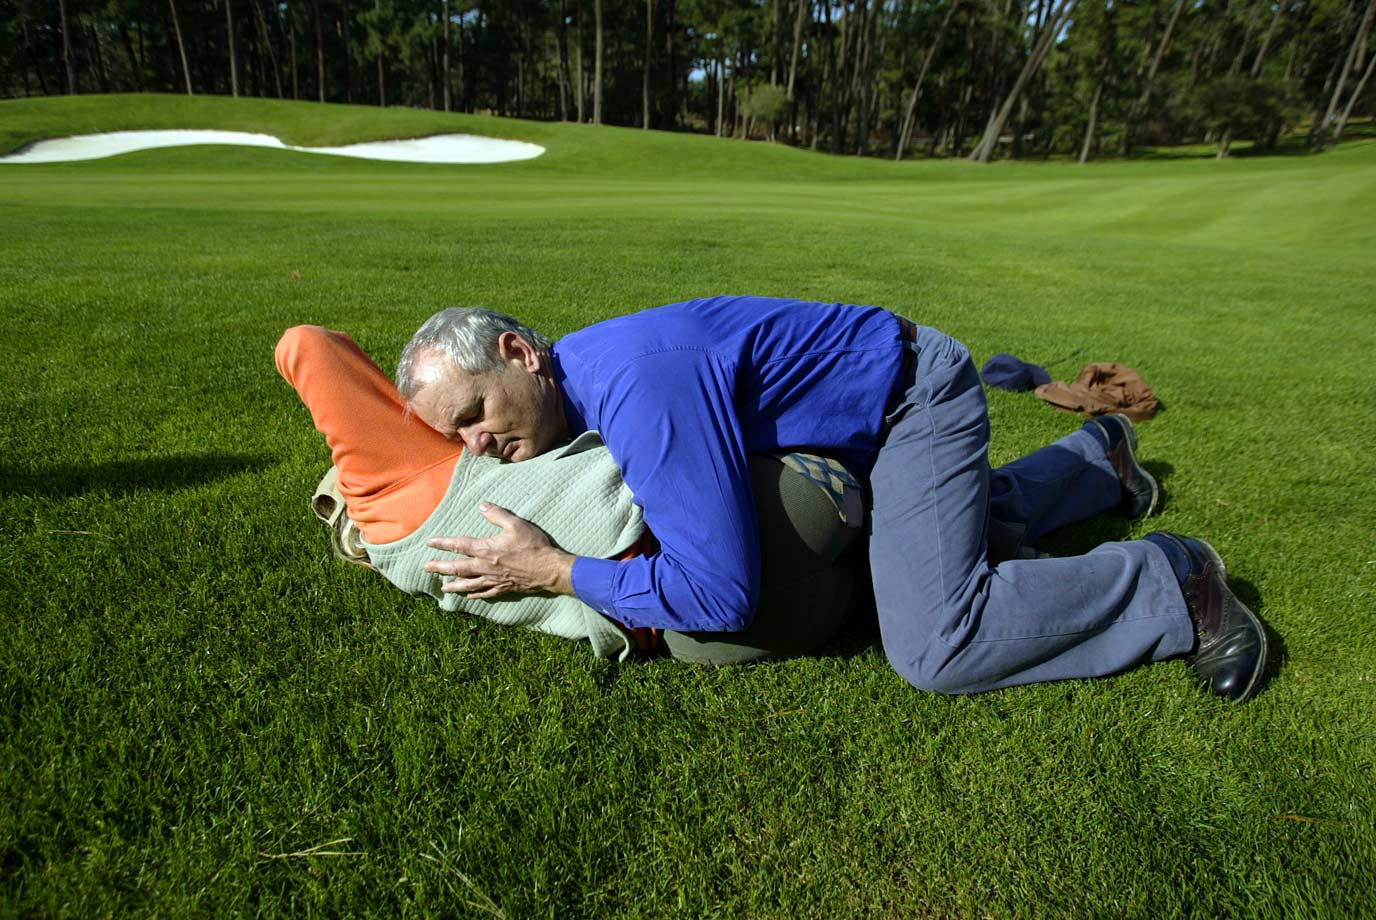 Bill Murray hugs Laura Davies to the ground during the AT&T Pebble Beach National Pro-Am golf tournament on Feb. 7, 2003 at Pebble Beach, Calif.